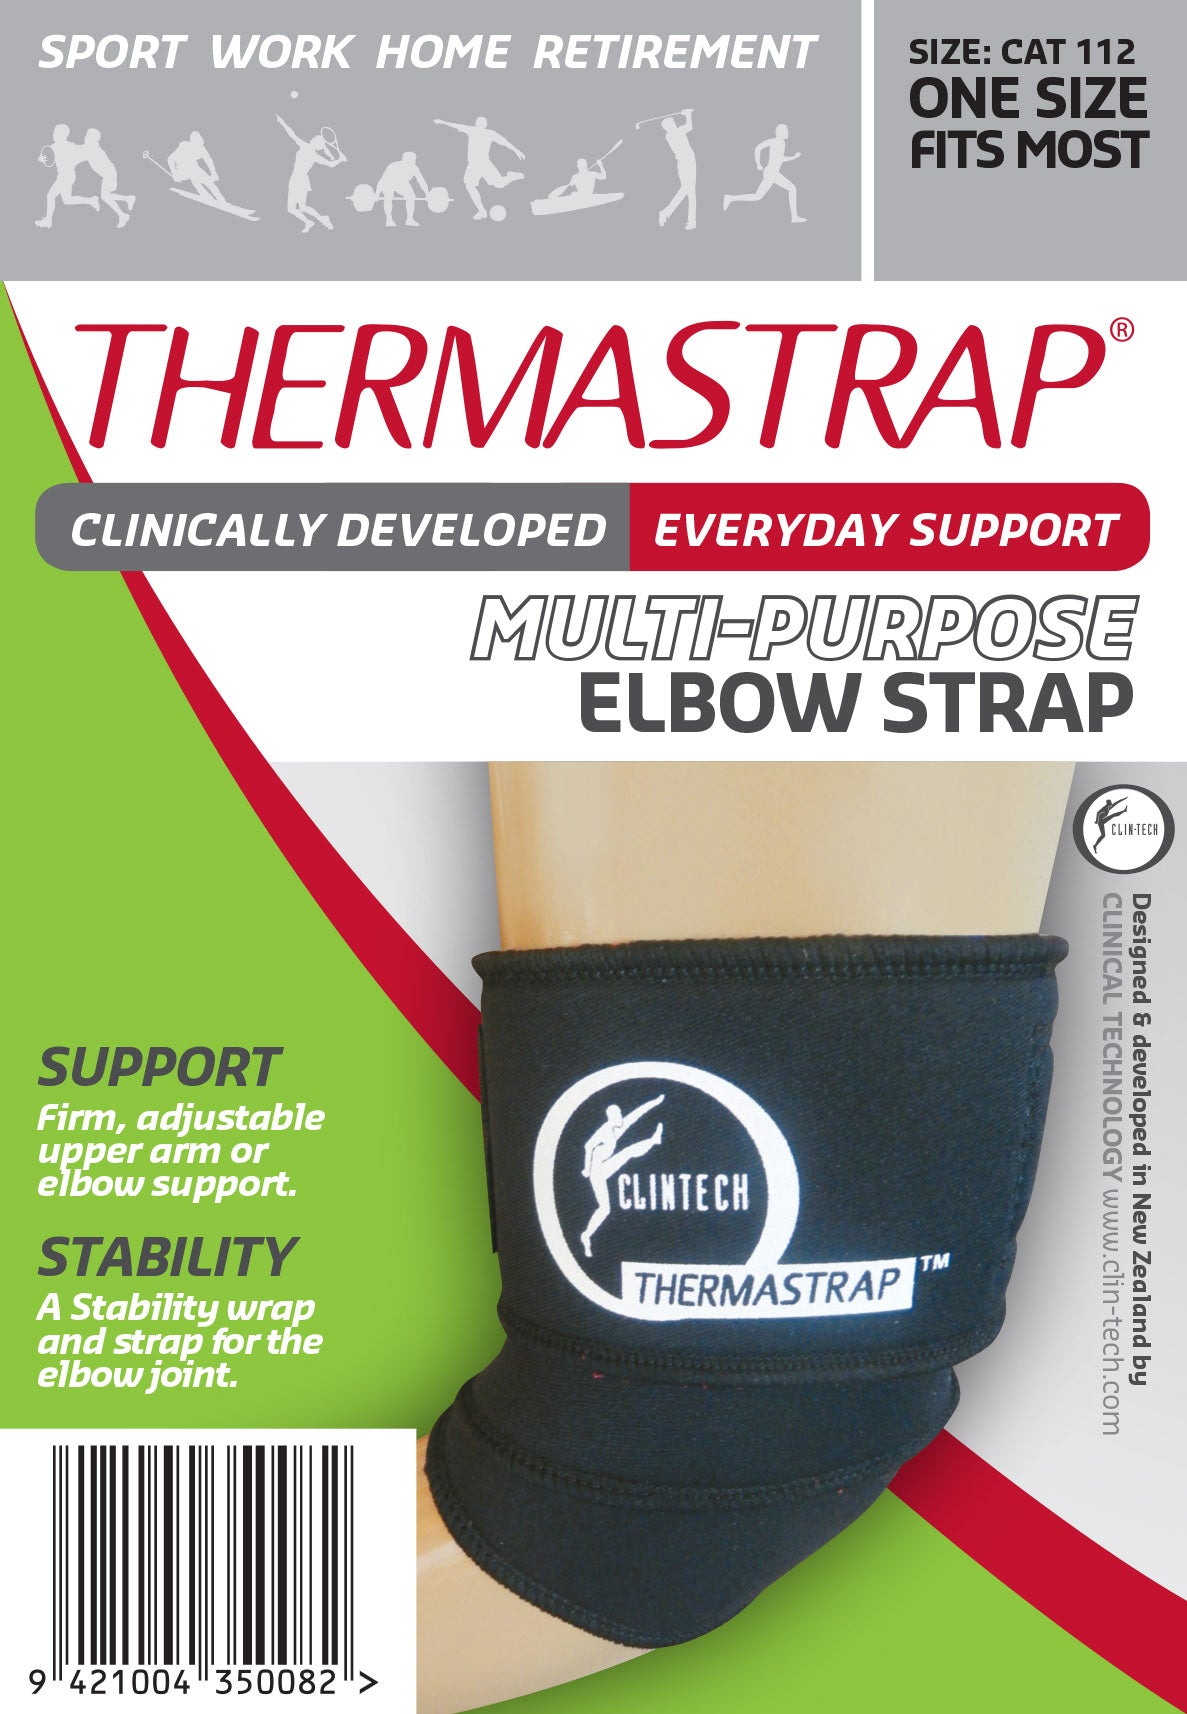 Thermastrap Multi-Purpose Elbow Strap